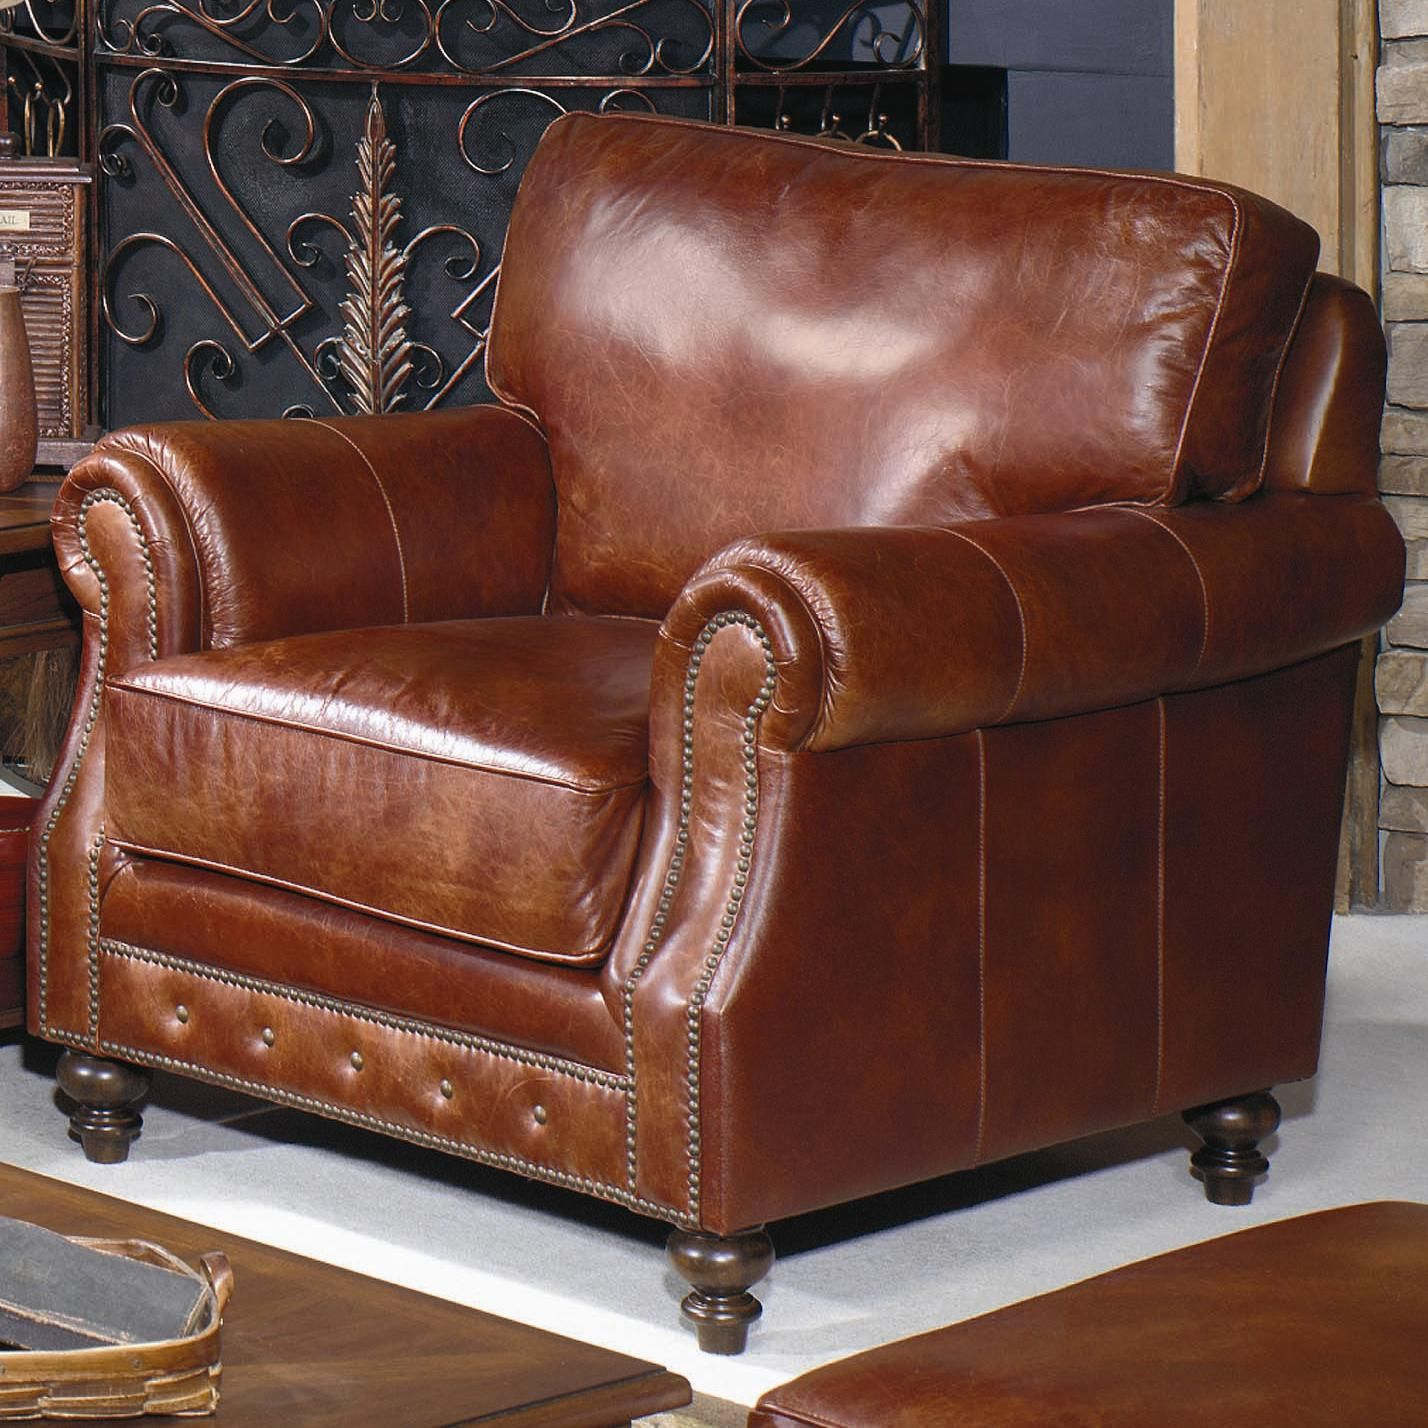 Superb Craftmaster L928 Leather Chair With Nailhead Trim At Riverview Galleries